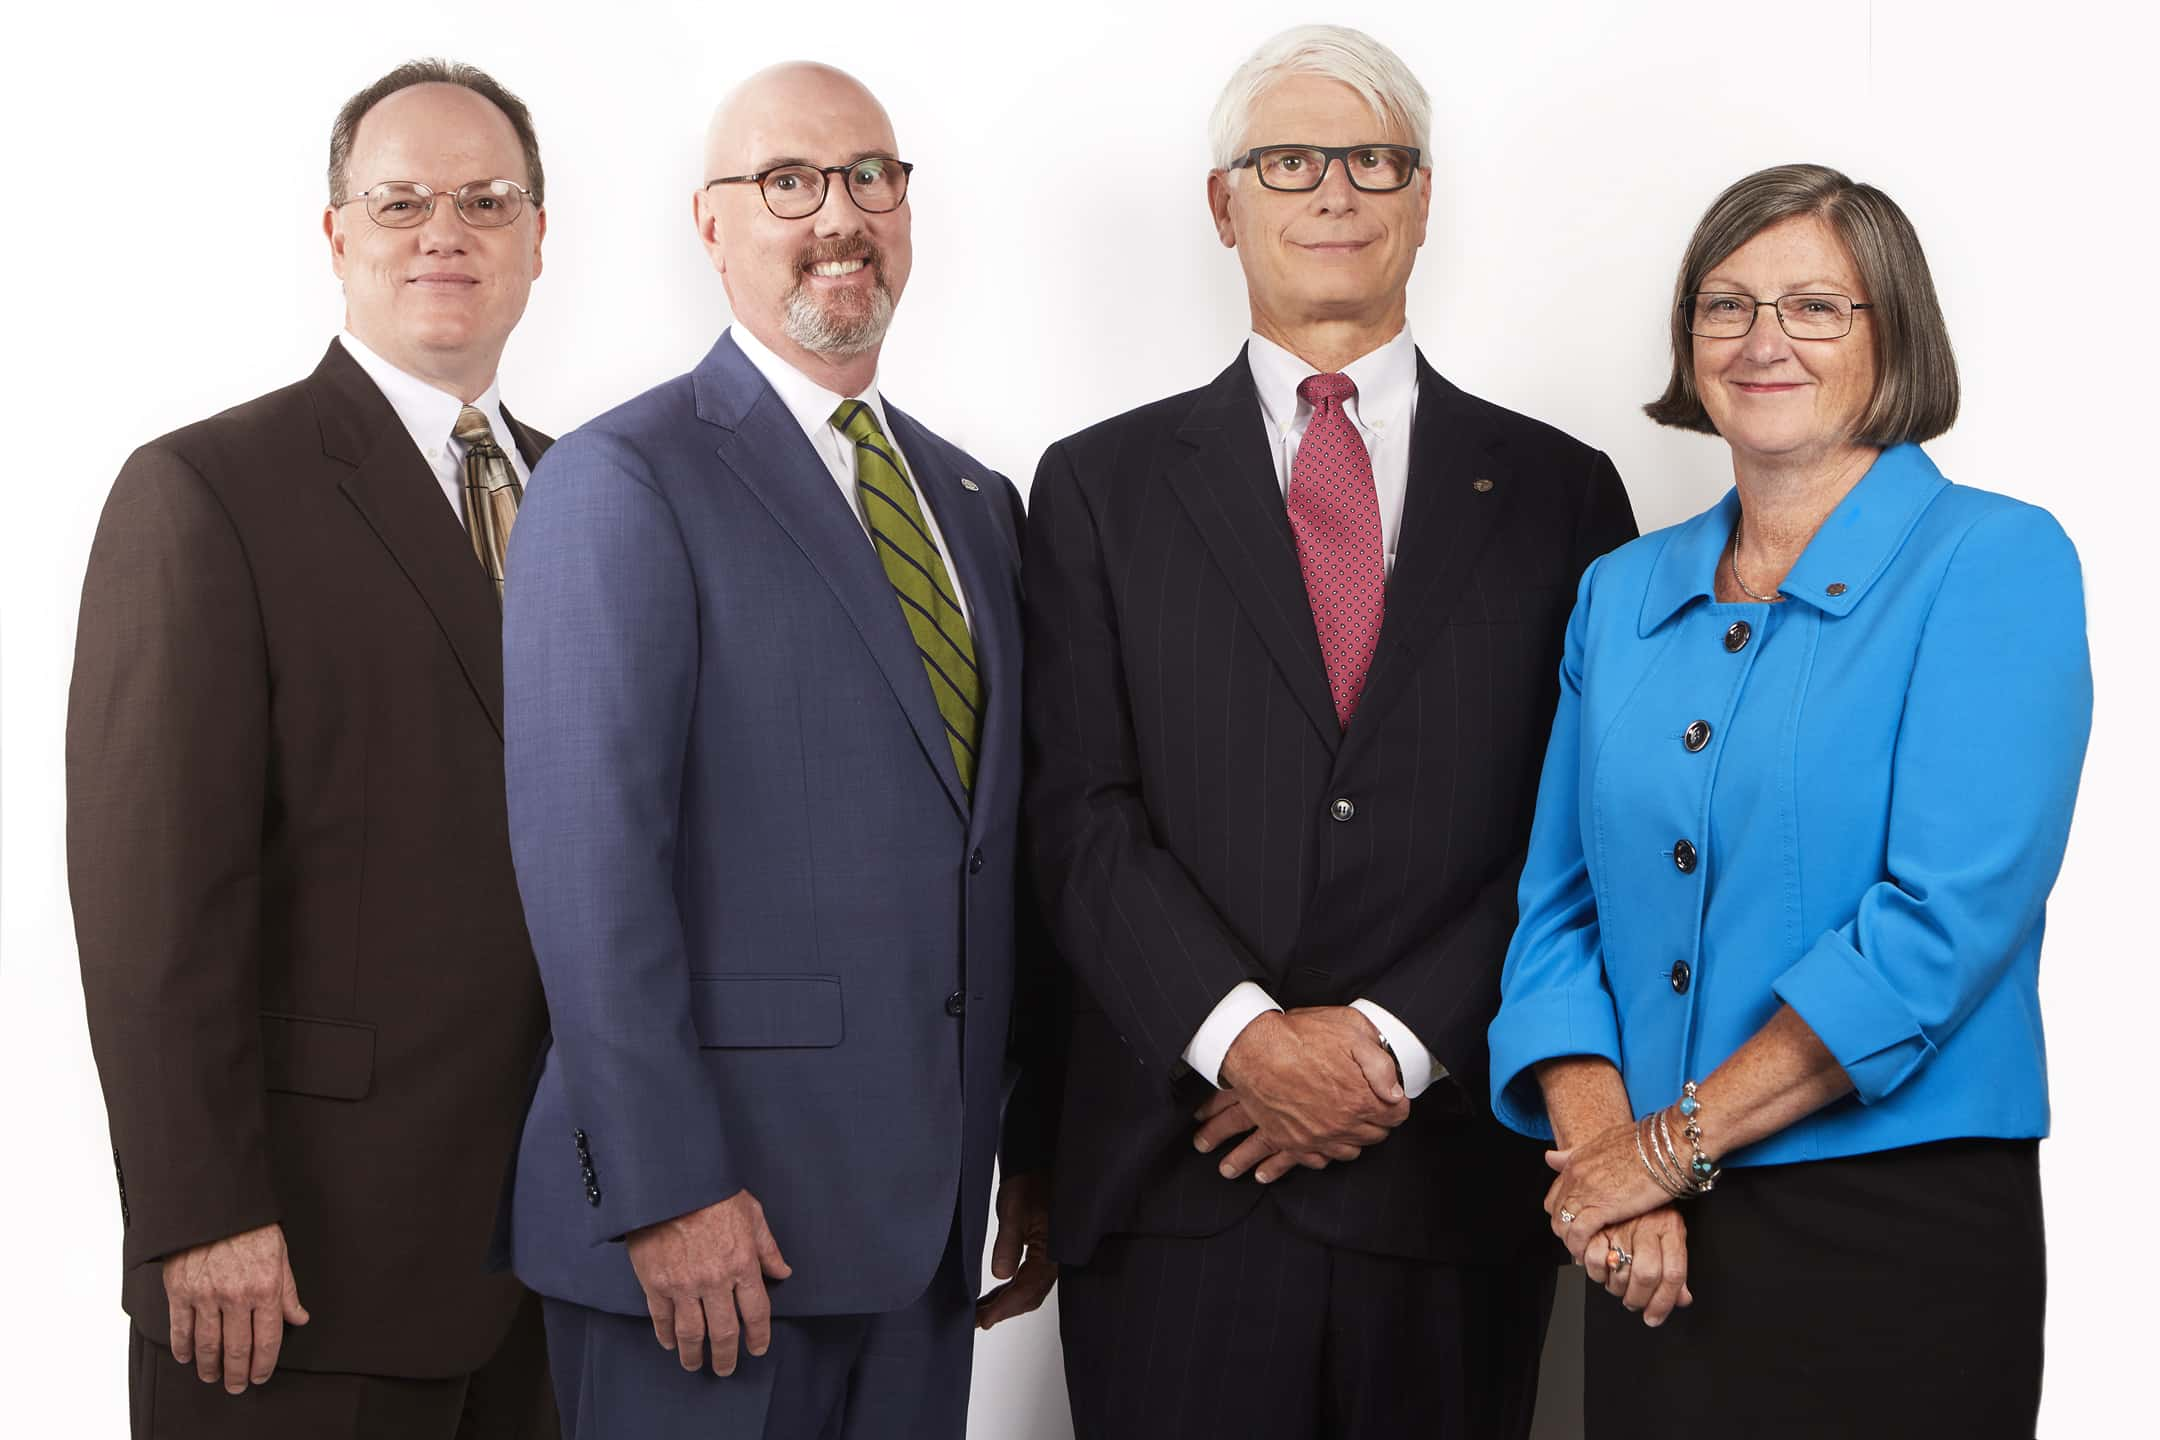 Union Savings Bank in Connecticut executive leadership team